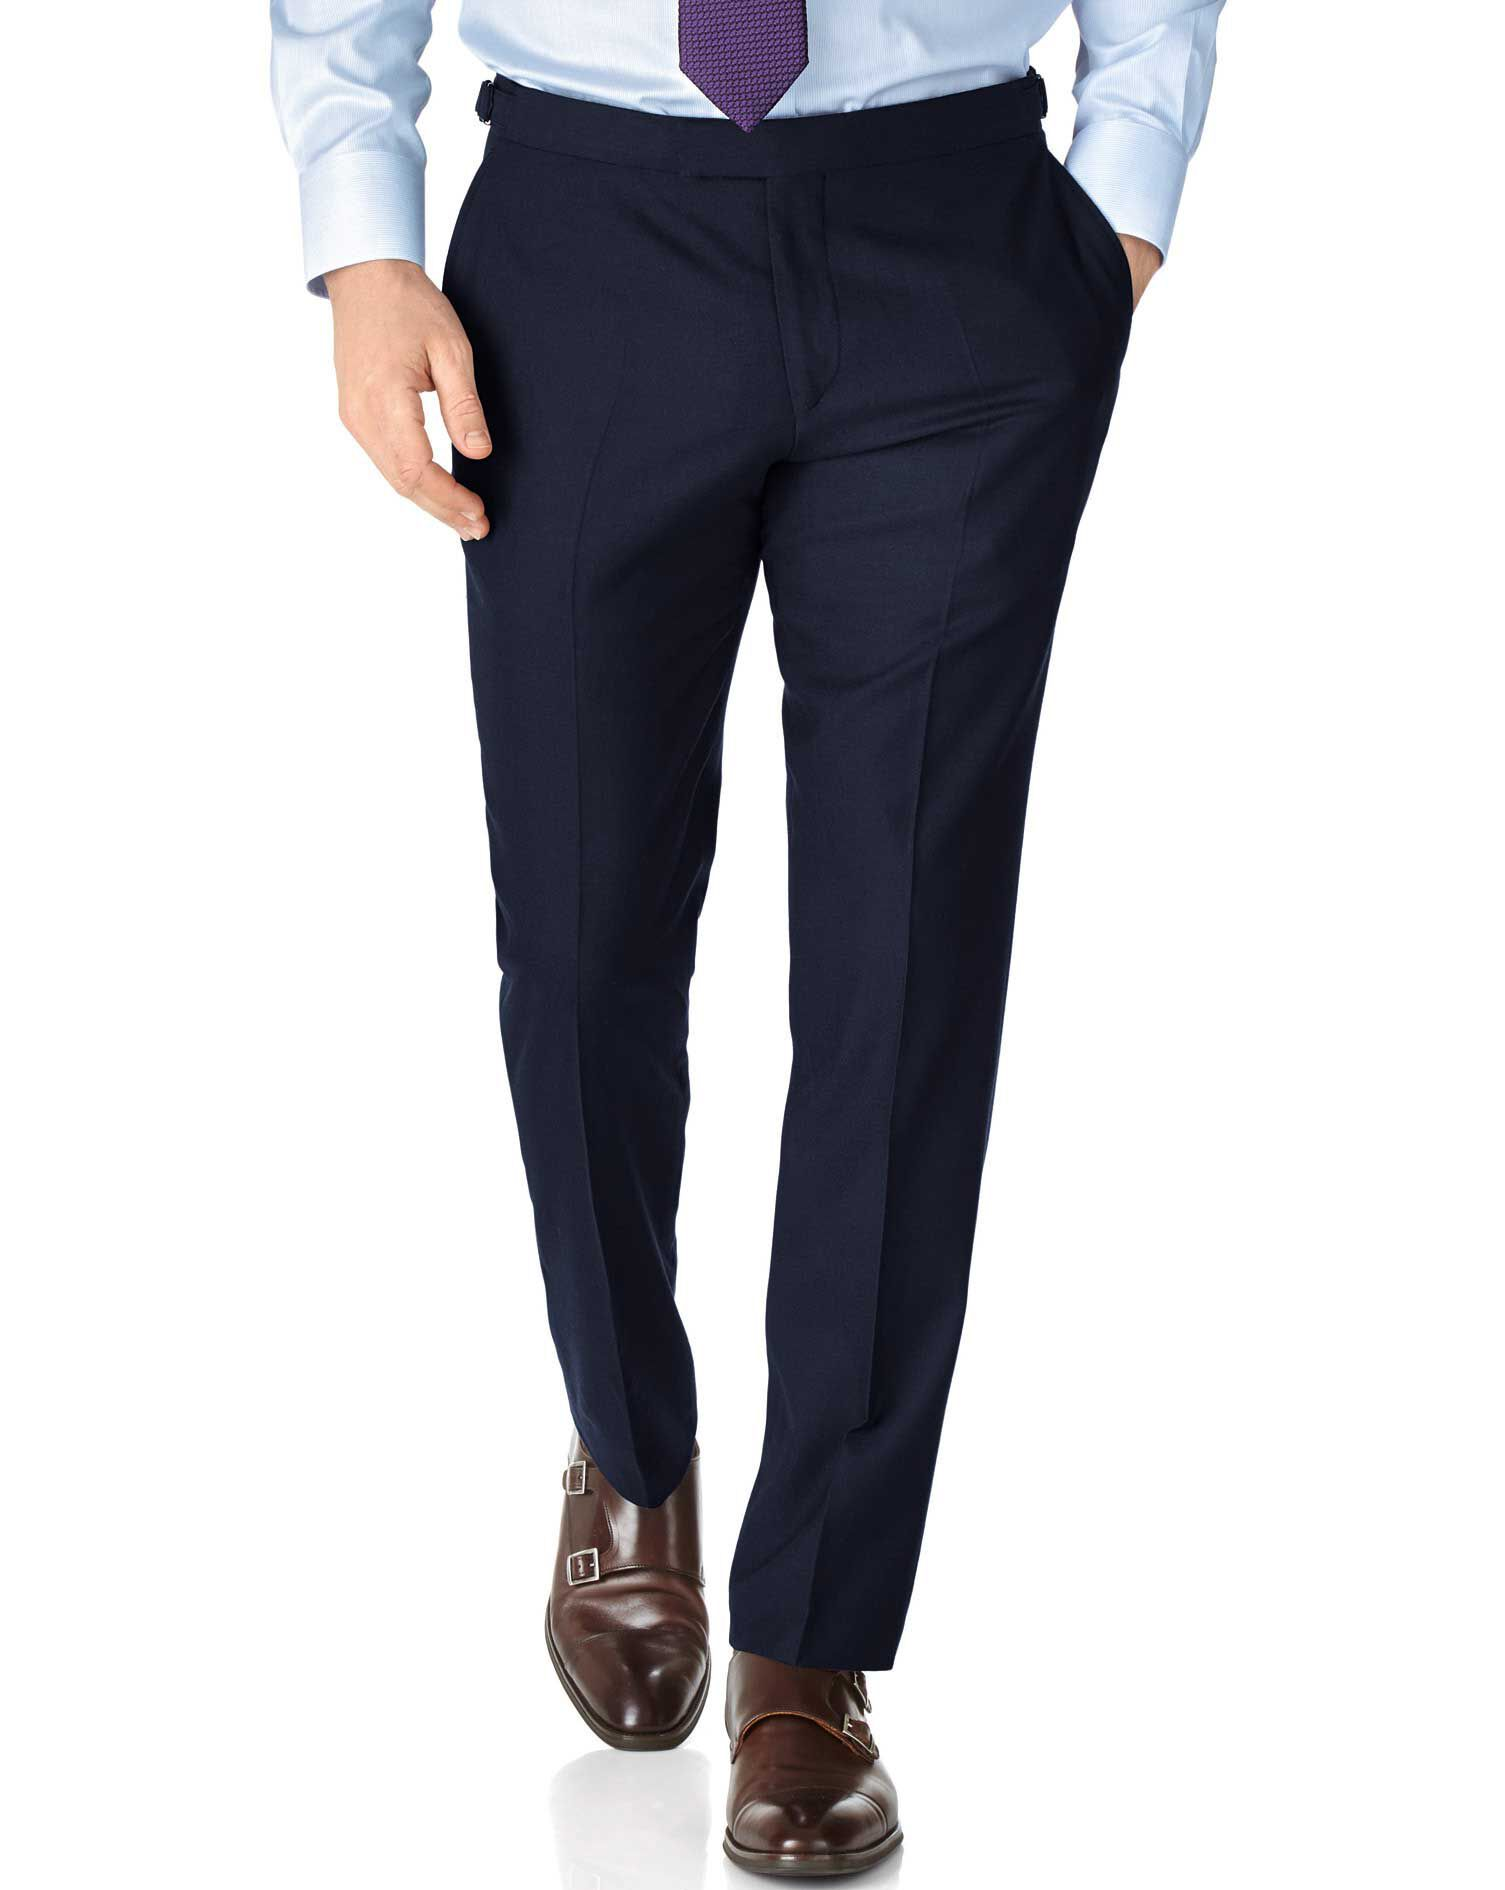 Navy Slim Fit British Serge Luxury Suit Trousers Size W40 L38 by Charles Tyrwhitt